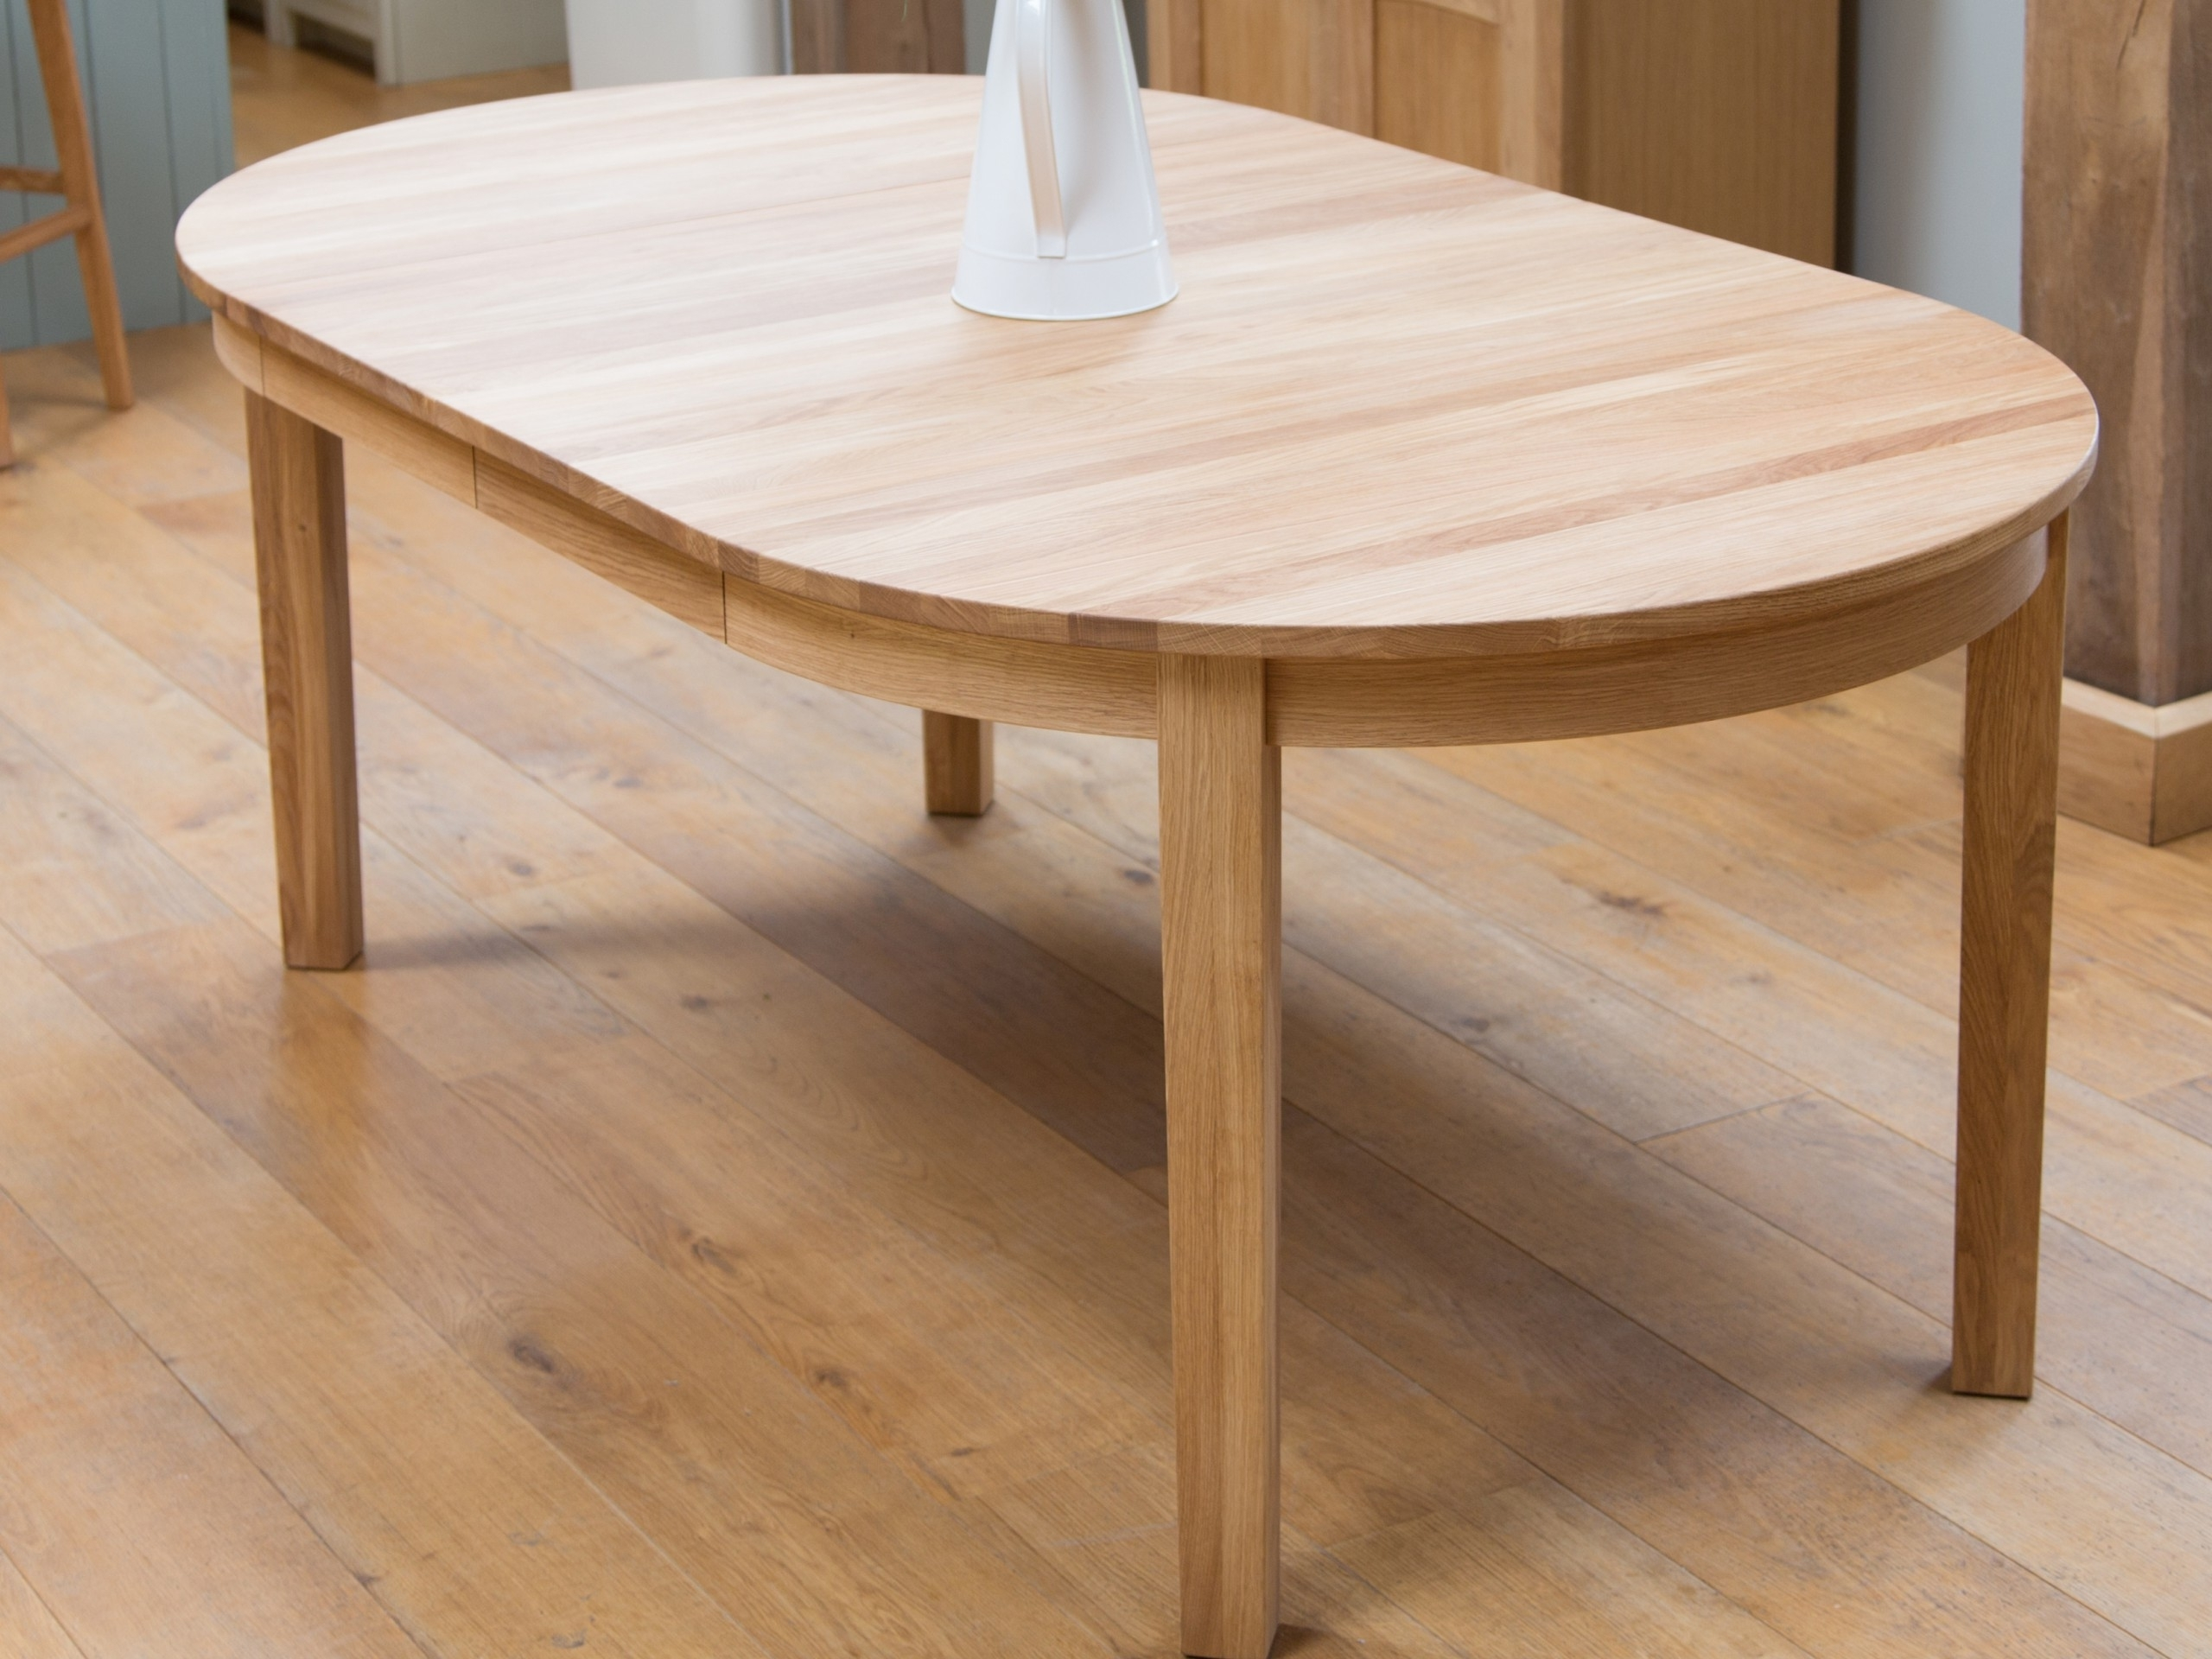 Preferred Round Extendable Dining Tables And Chairs For Round Extendable Dining Table Design (View 11 of 25)